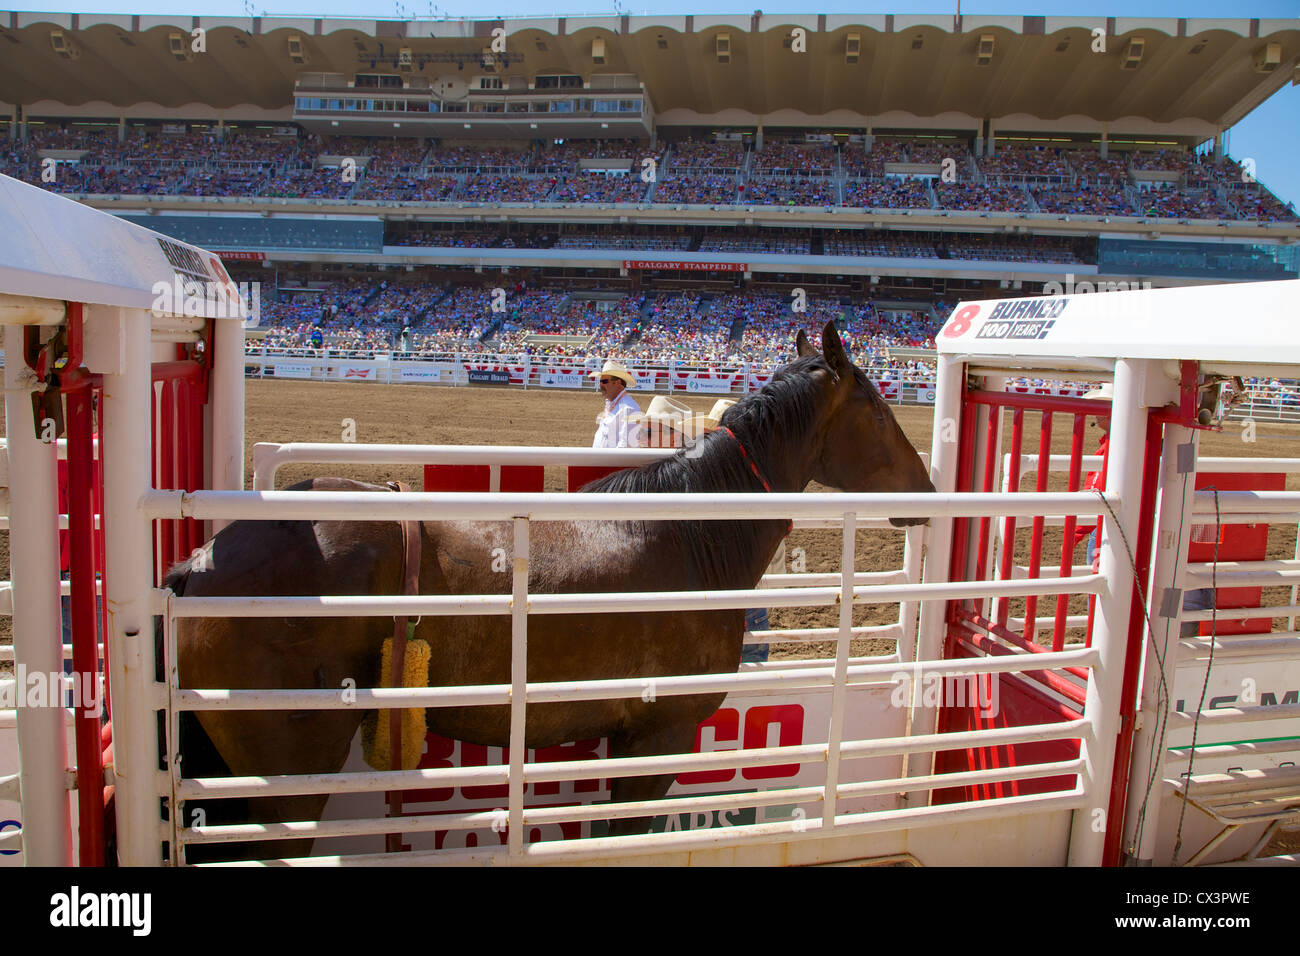 A rodeo horse awaits its turn in the sidelines at Calgary Stampede, Alberta, Canada - Stock Image